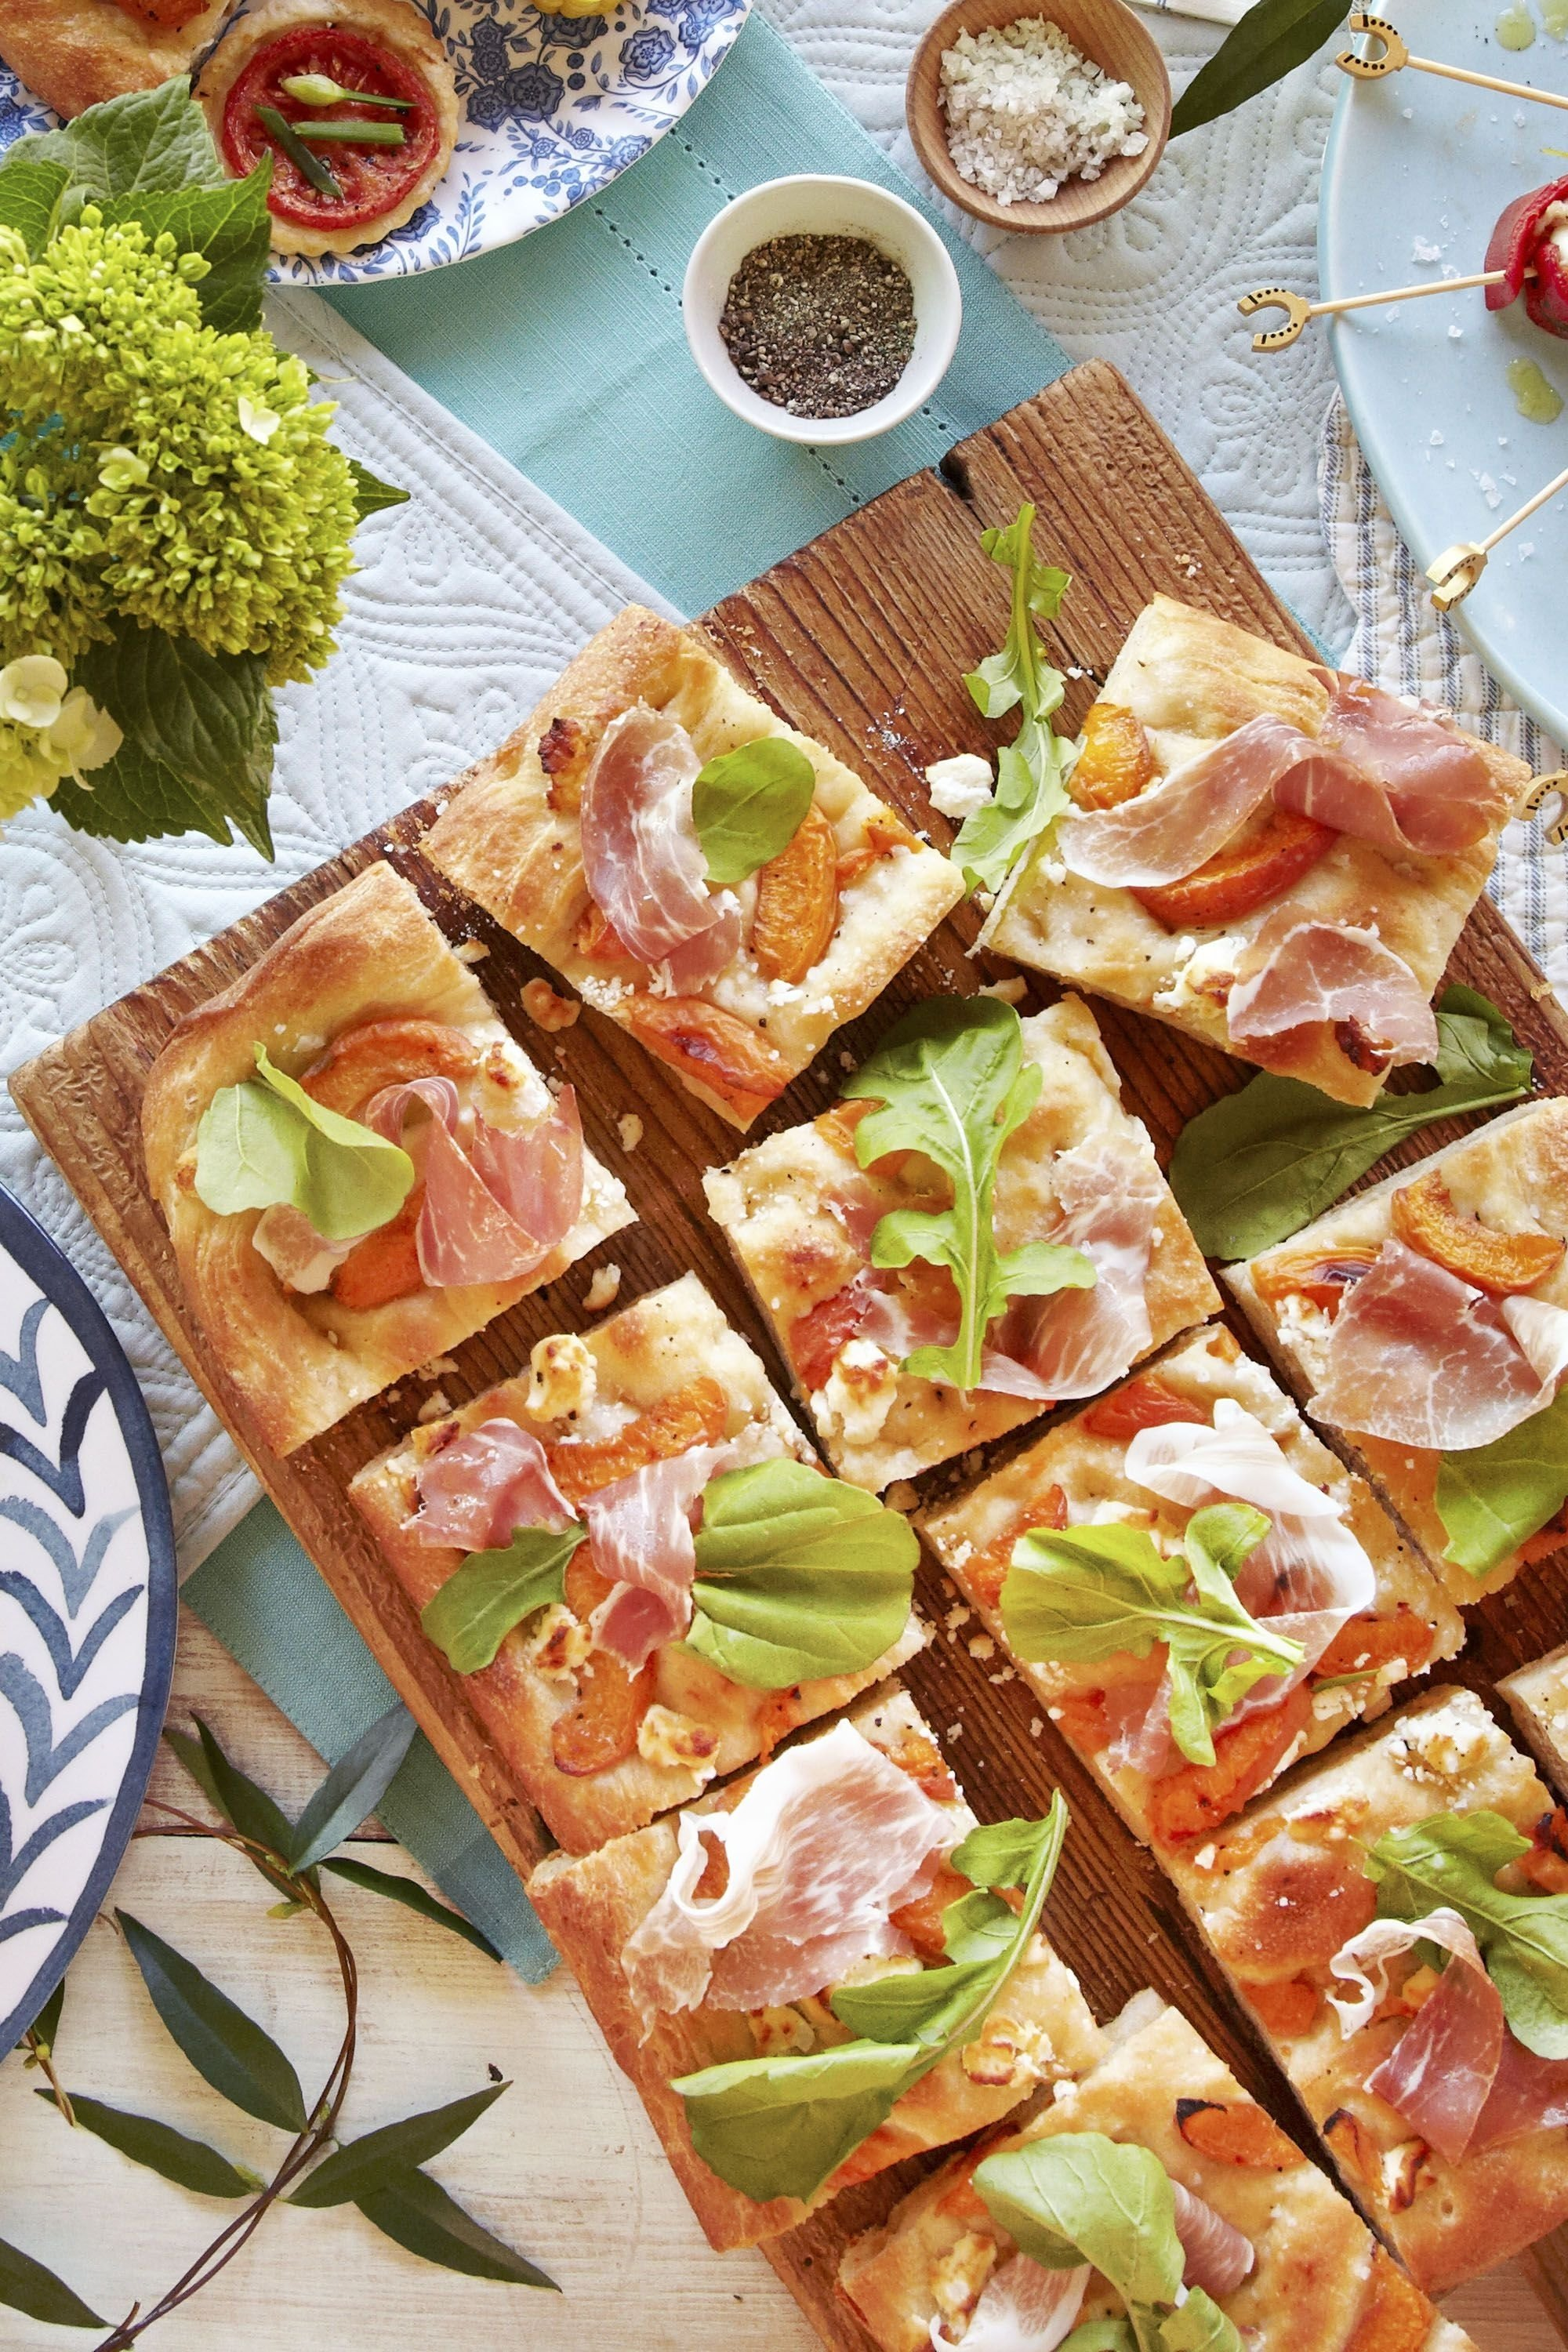 10 Perfect Food Ideas For A Picnic 65 summer picnic recipes easy food ideas for a summer picnic 1 2020